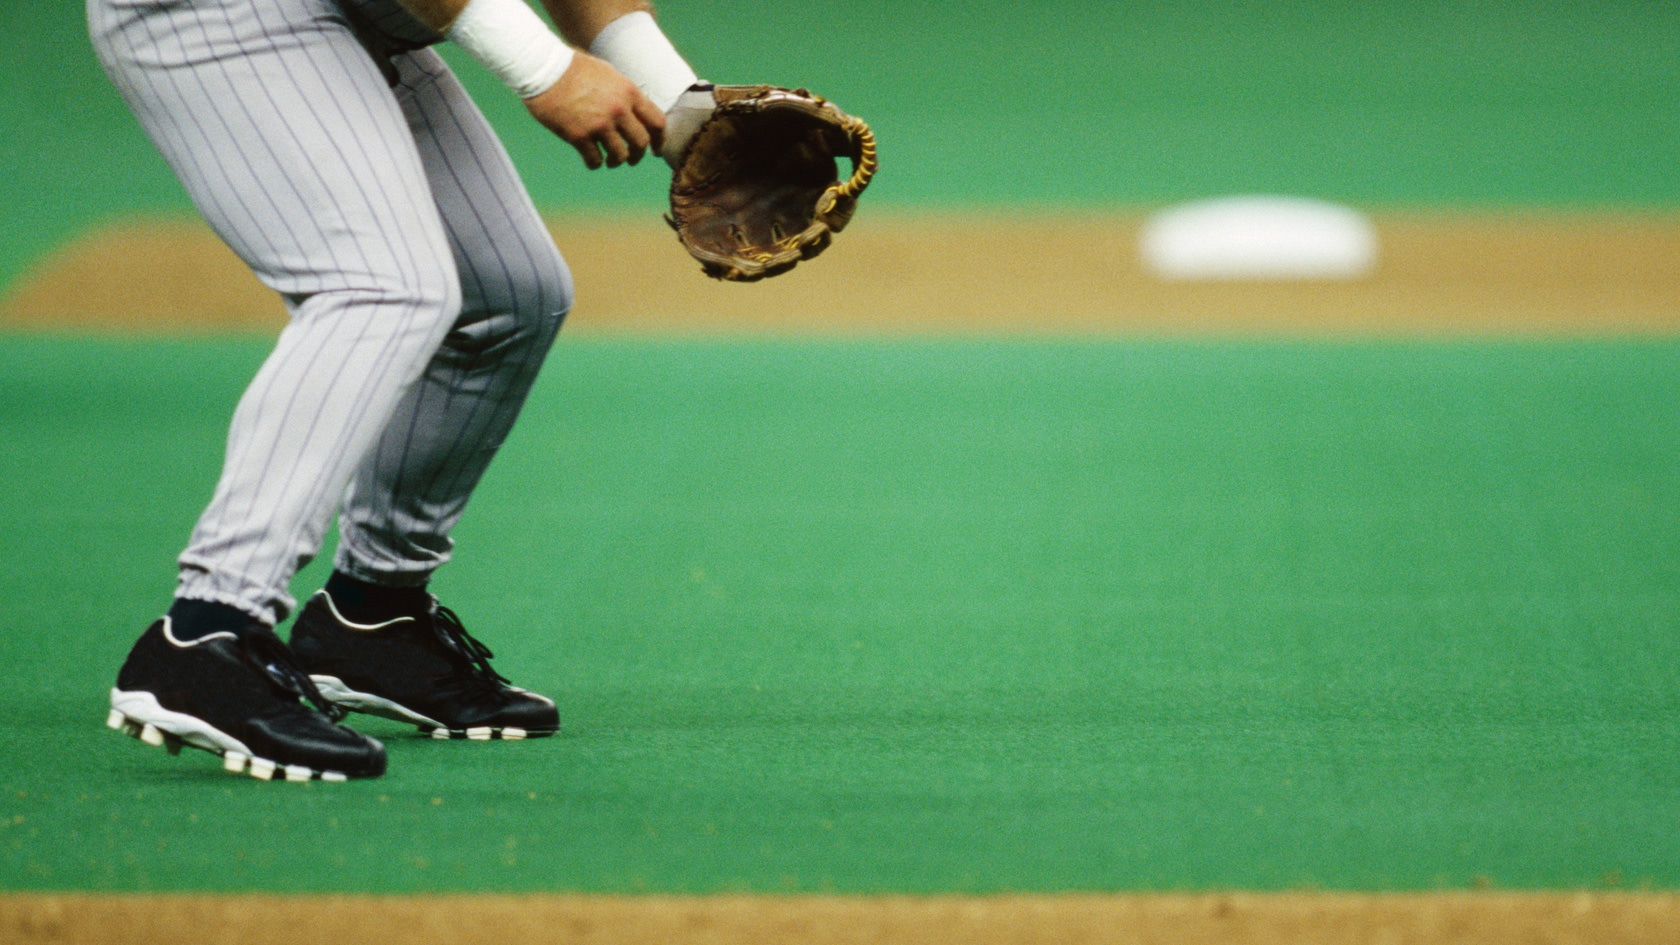 Black Parents Of Student-Athletes Called The N-Word During College World Series Between Vanderbilt University And Mississippi State